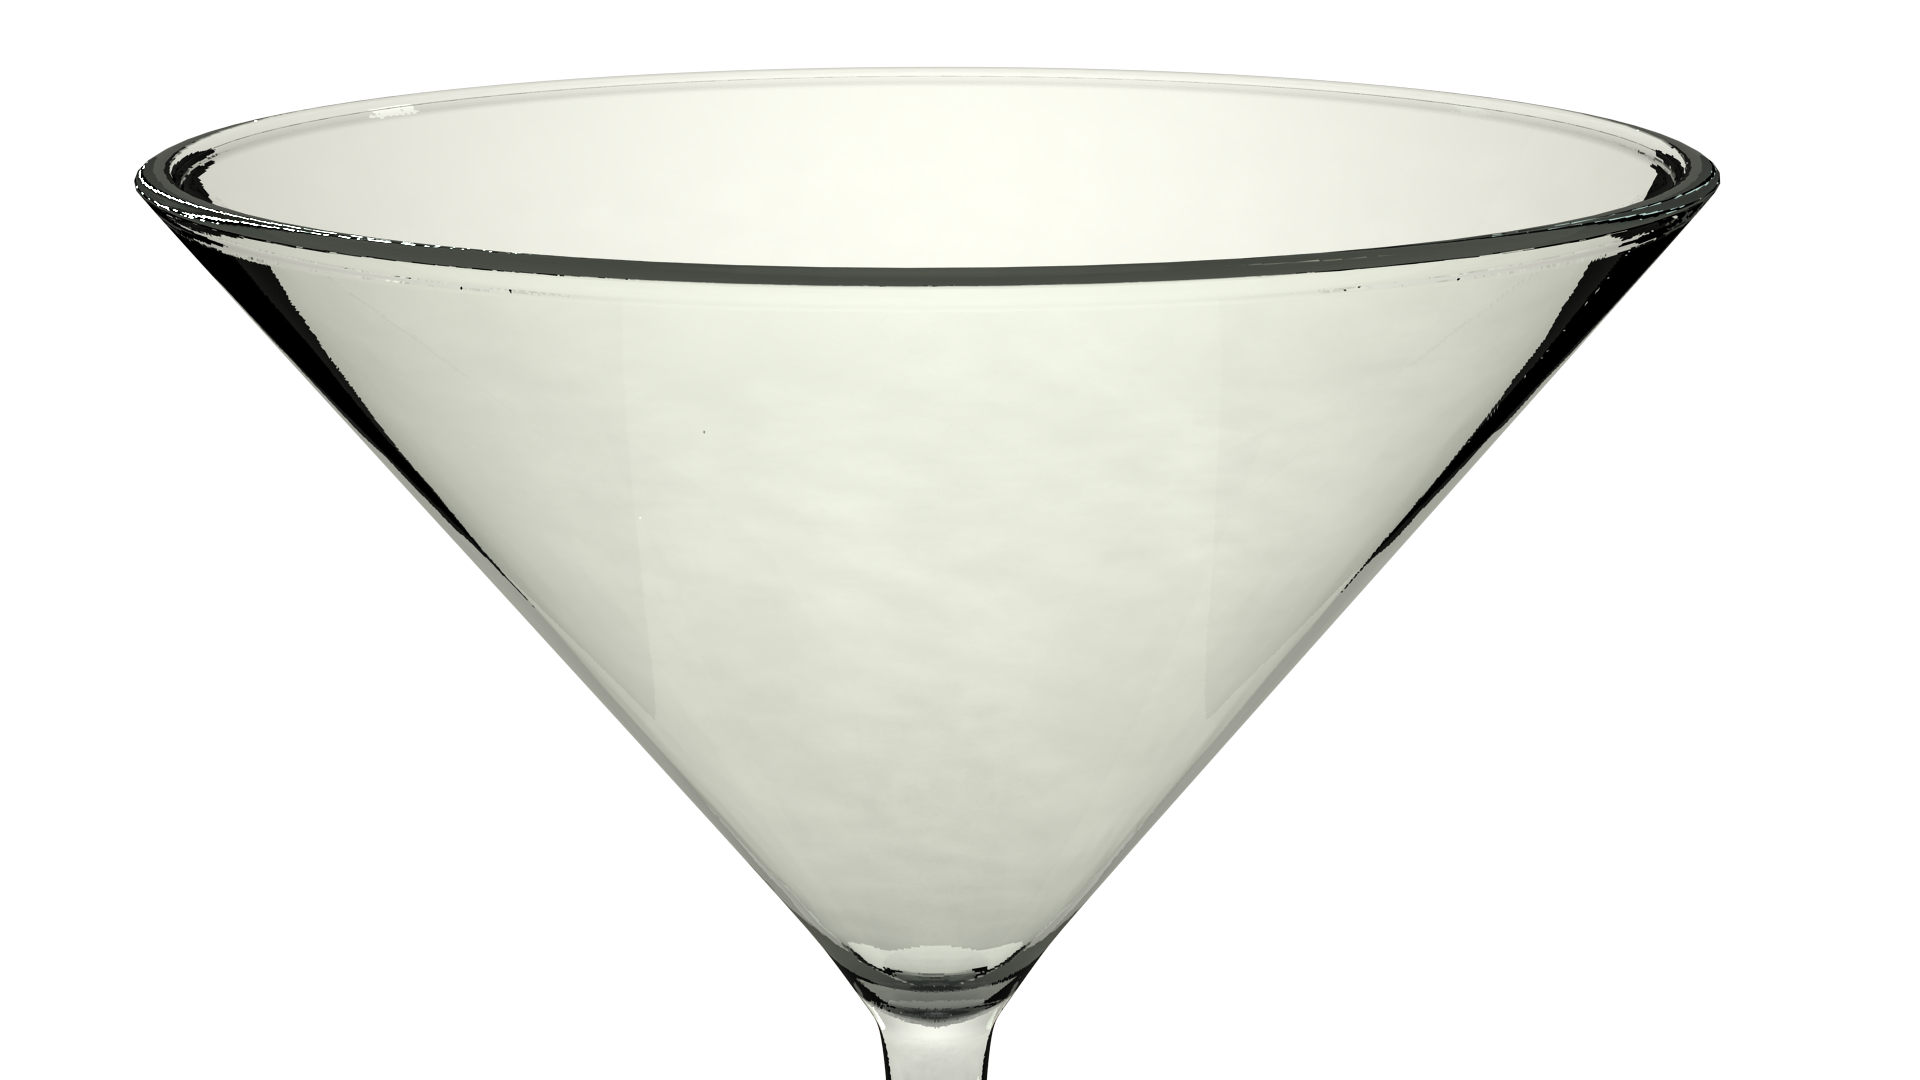 Cocktail Martini Glass Cup Drink Martini Cocktail Glass Cup Martini Glass